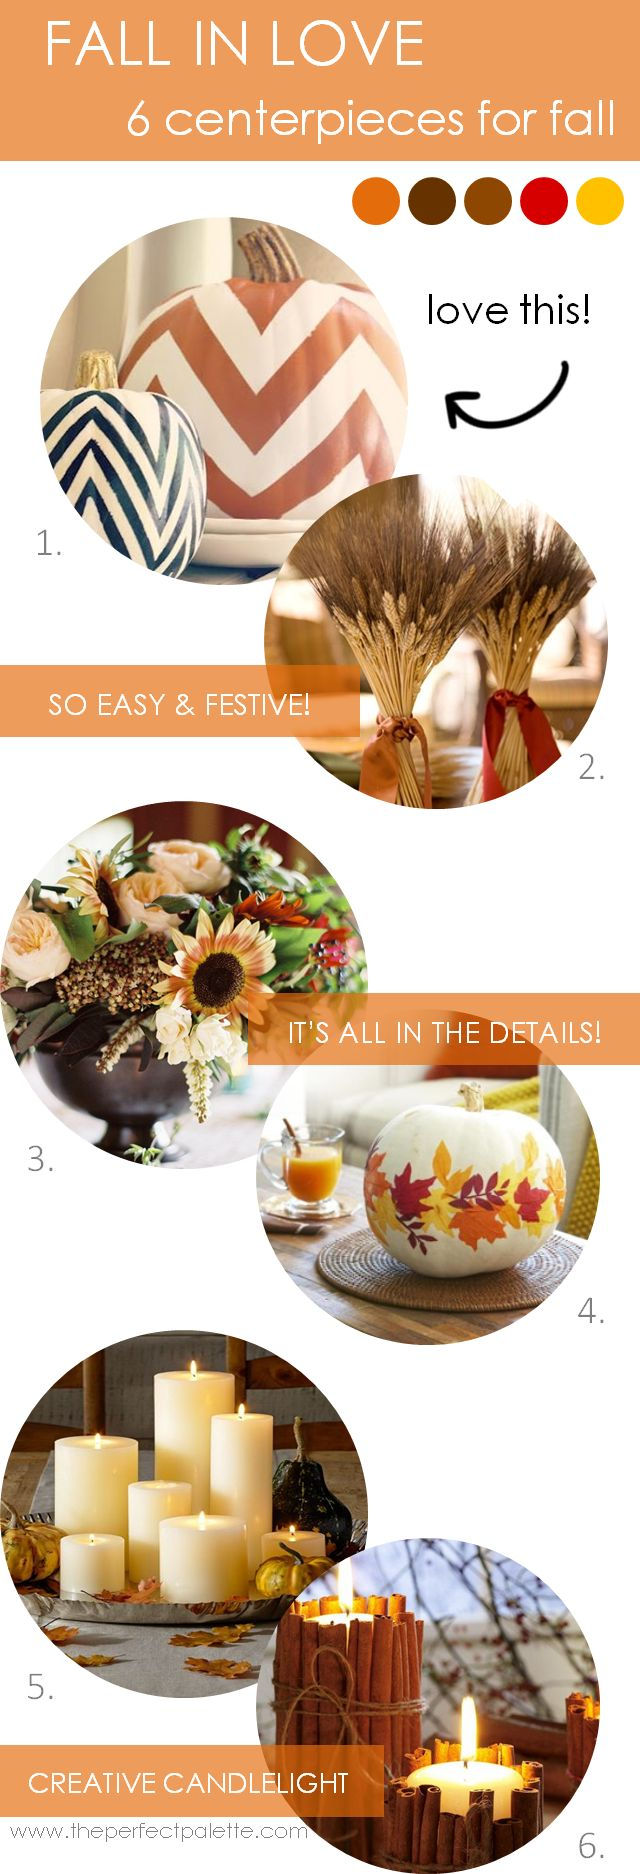 Fall in Love | 6 Centerpieces for Fall http://www.theperfectpalette.com/2013/10/fall-in-love-6-centerpieces-for-fall.html